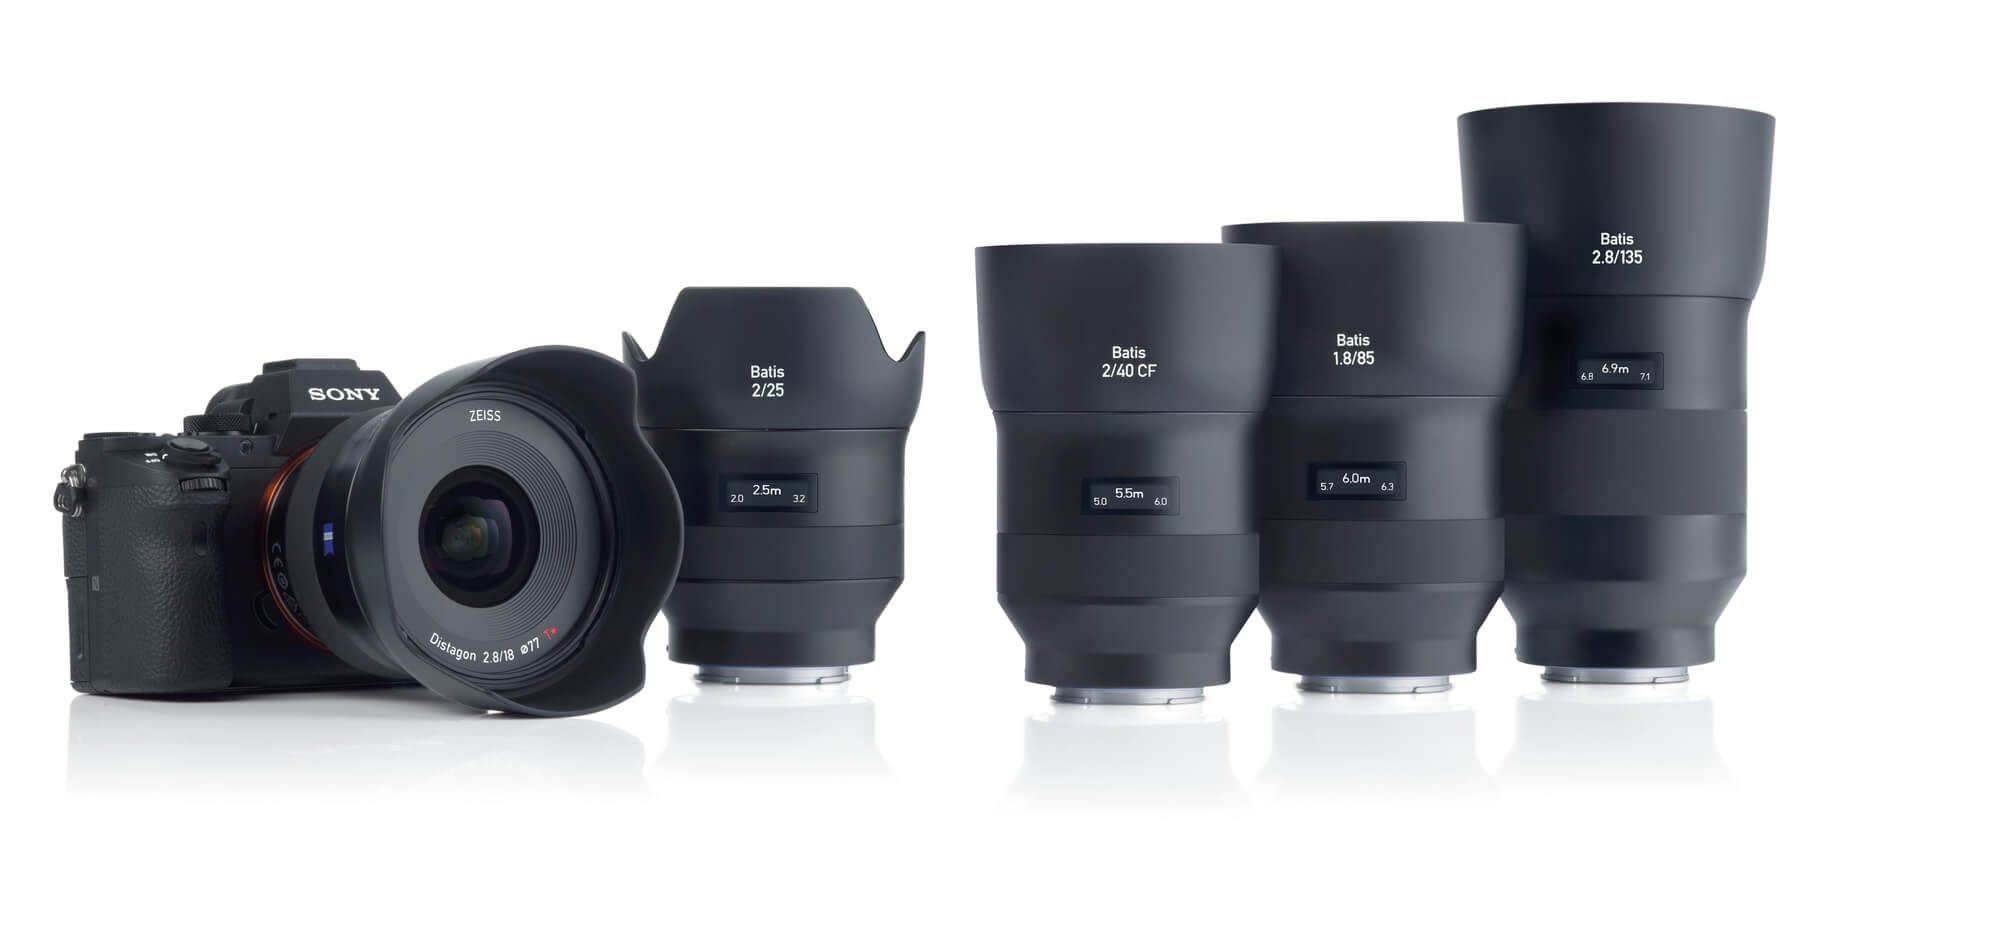 The Batis Family from Zeiss